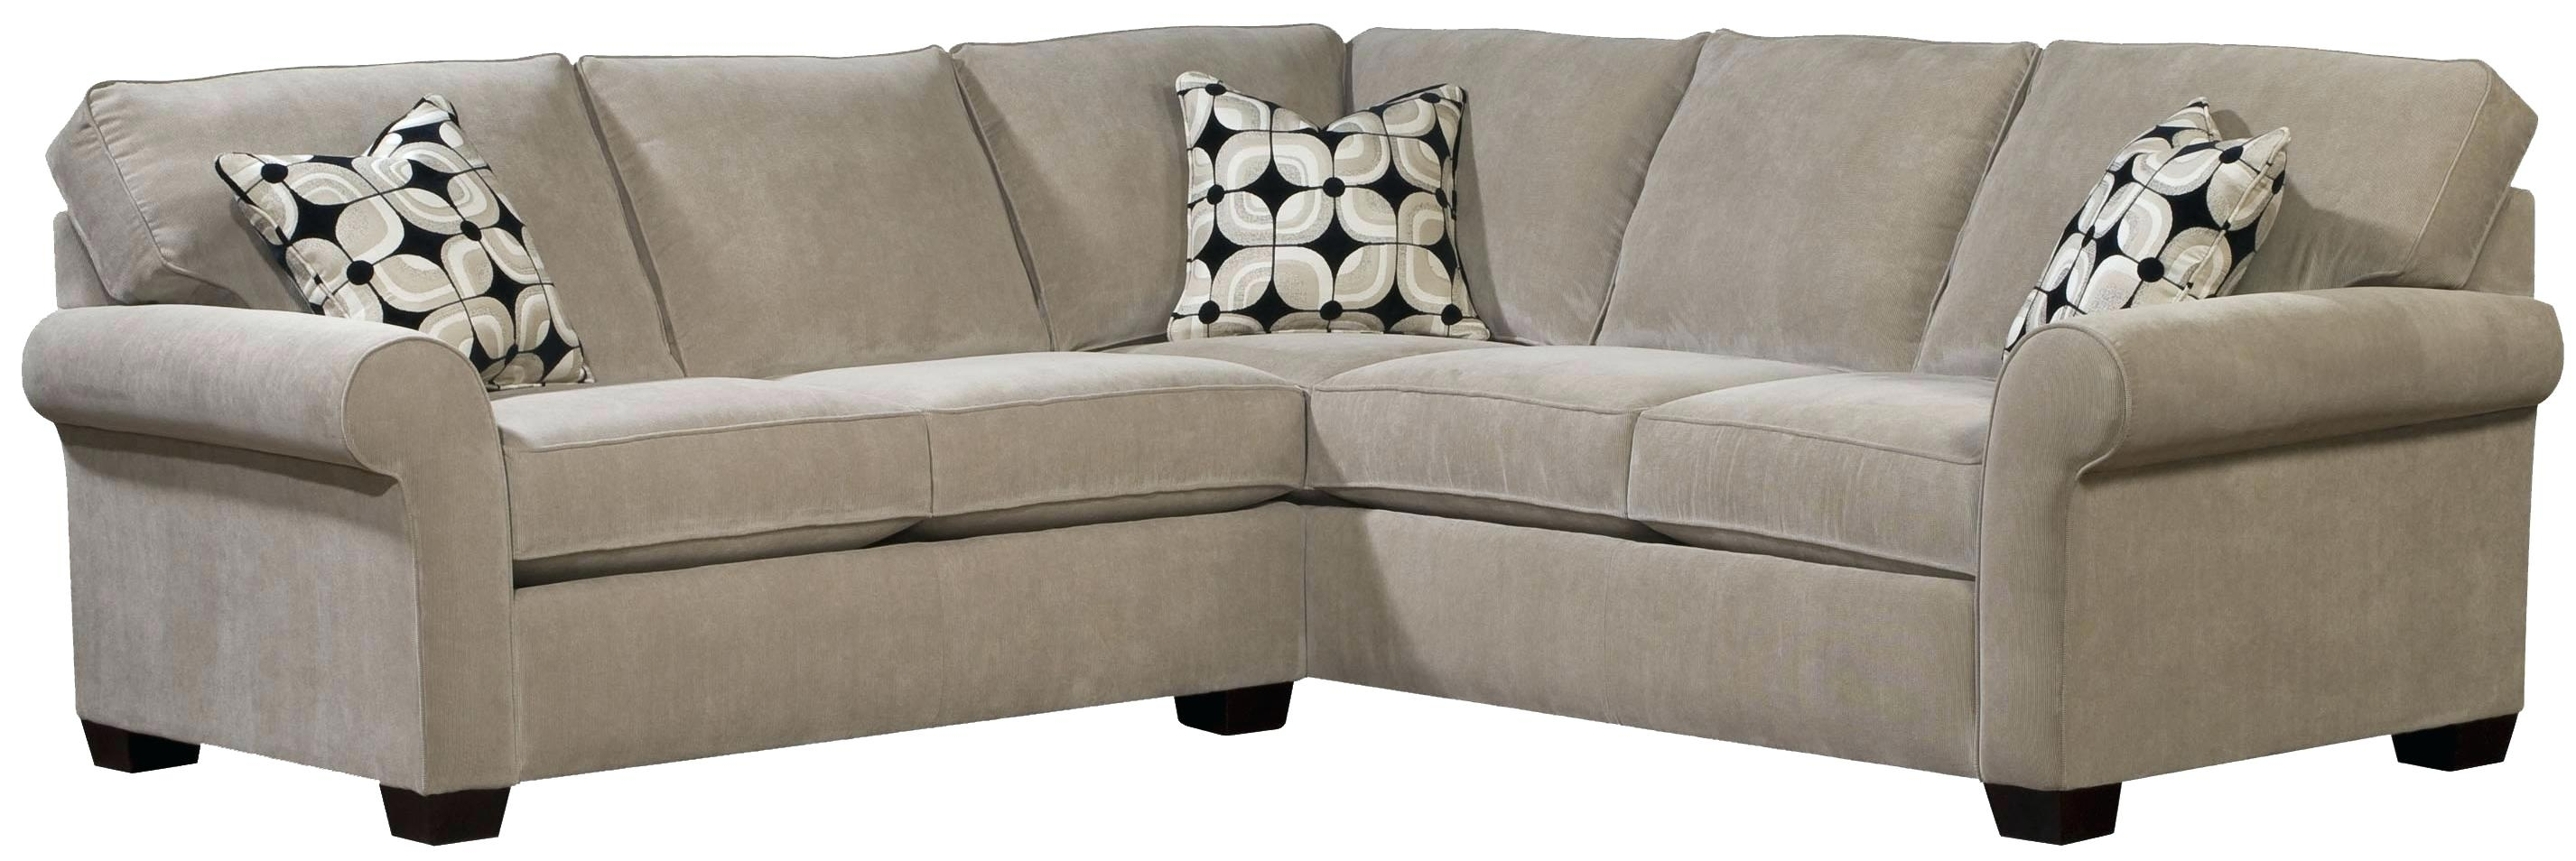 Featured Image of Sam Levitz Sectional Sofas